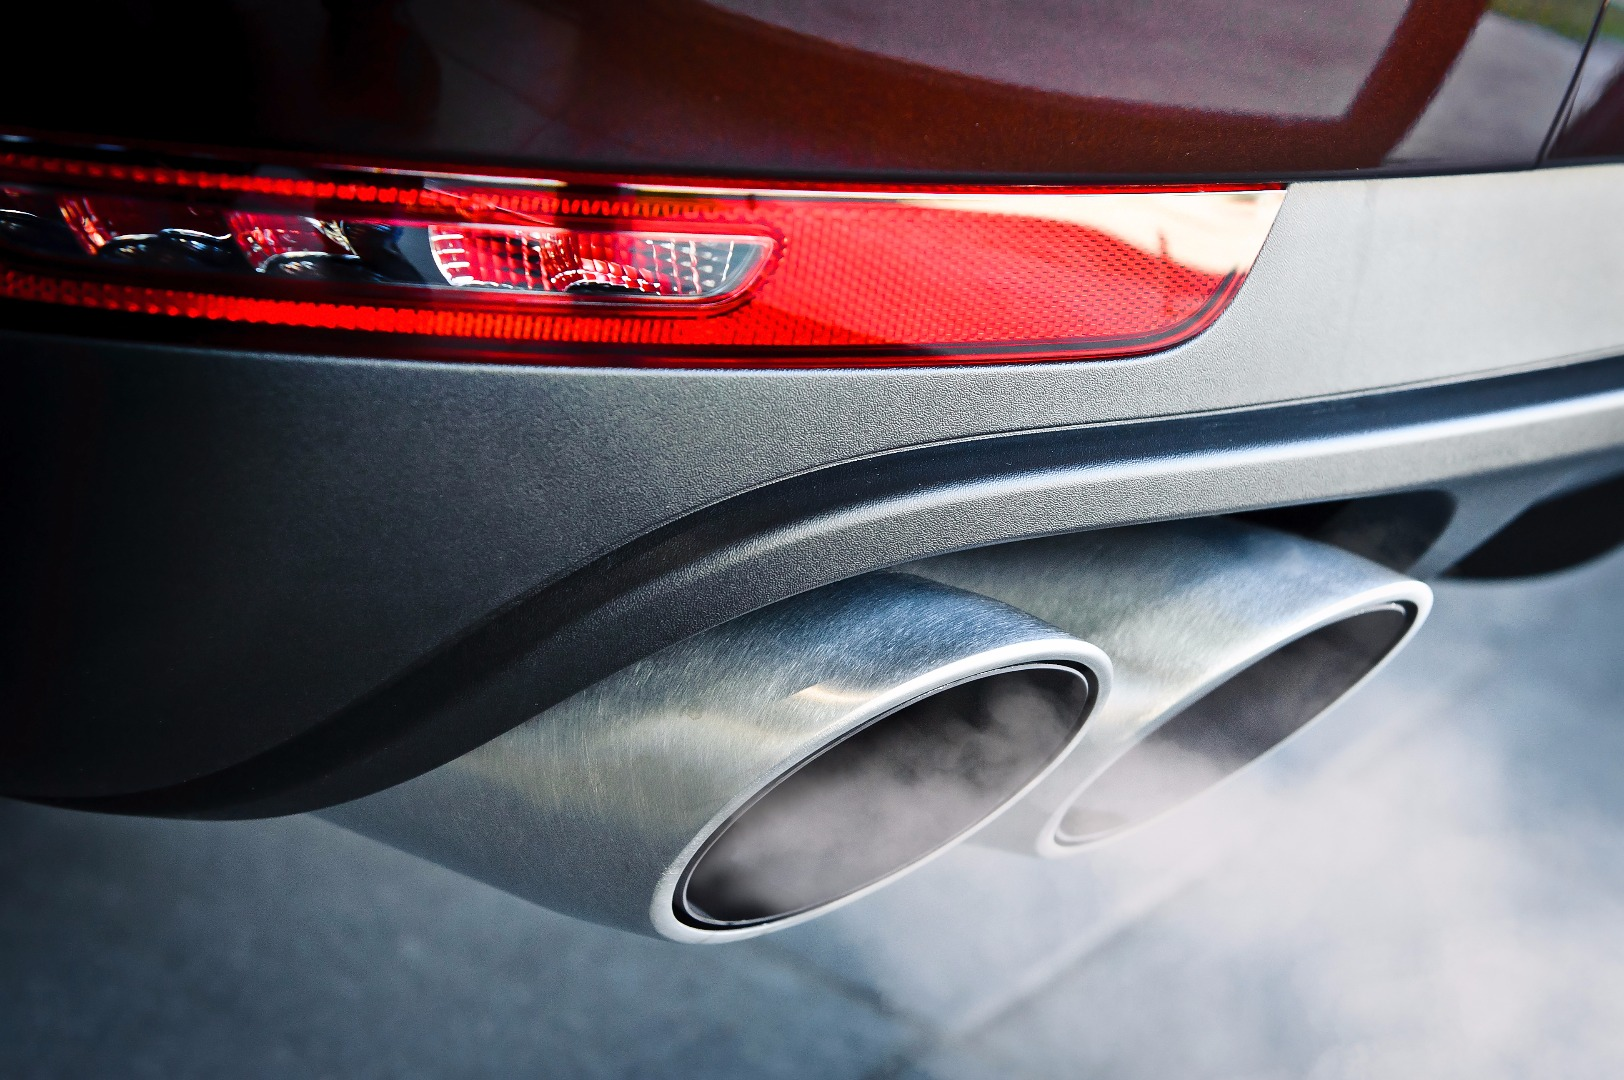 News Volkswagen Will Install Particulate Filters On All